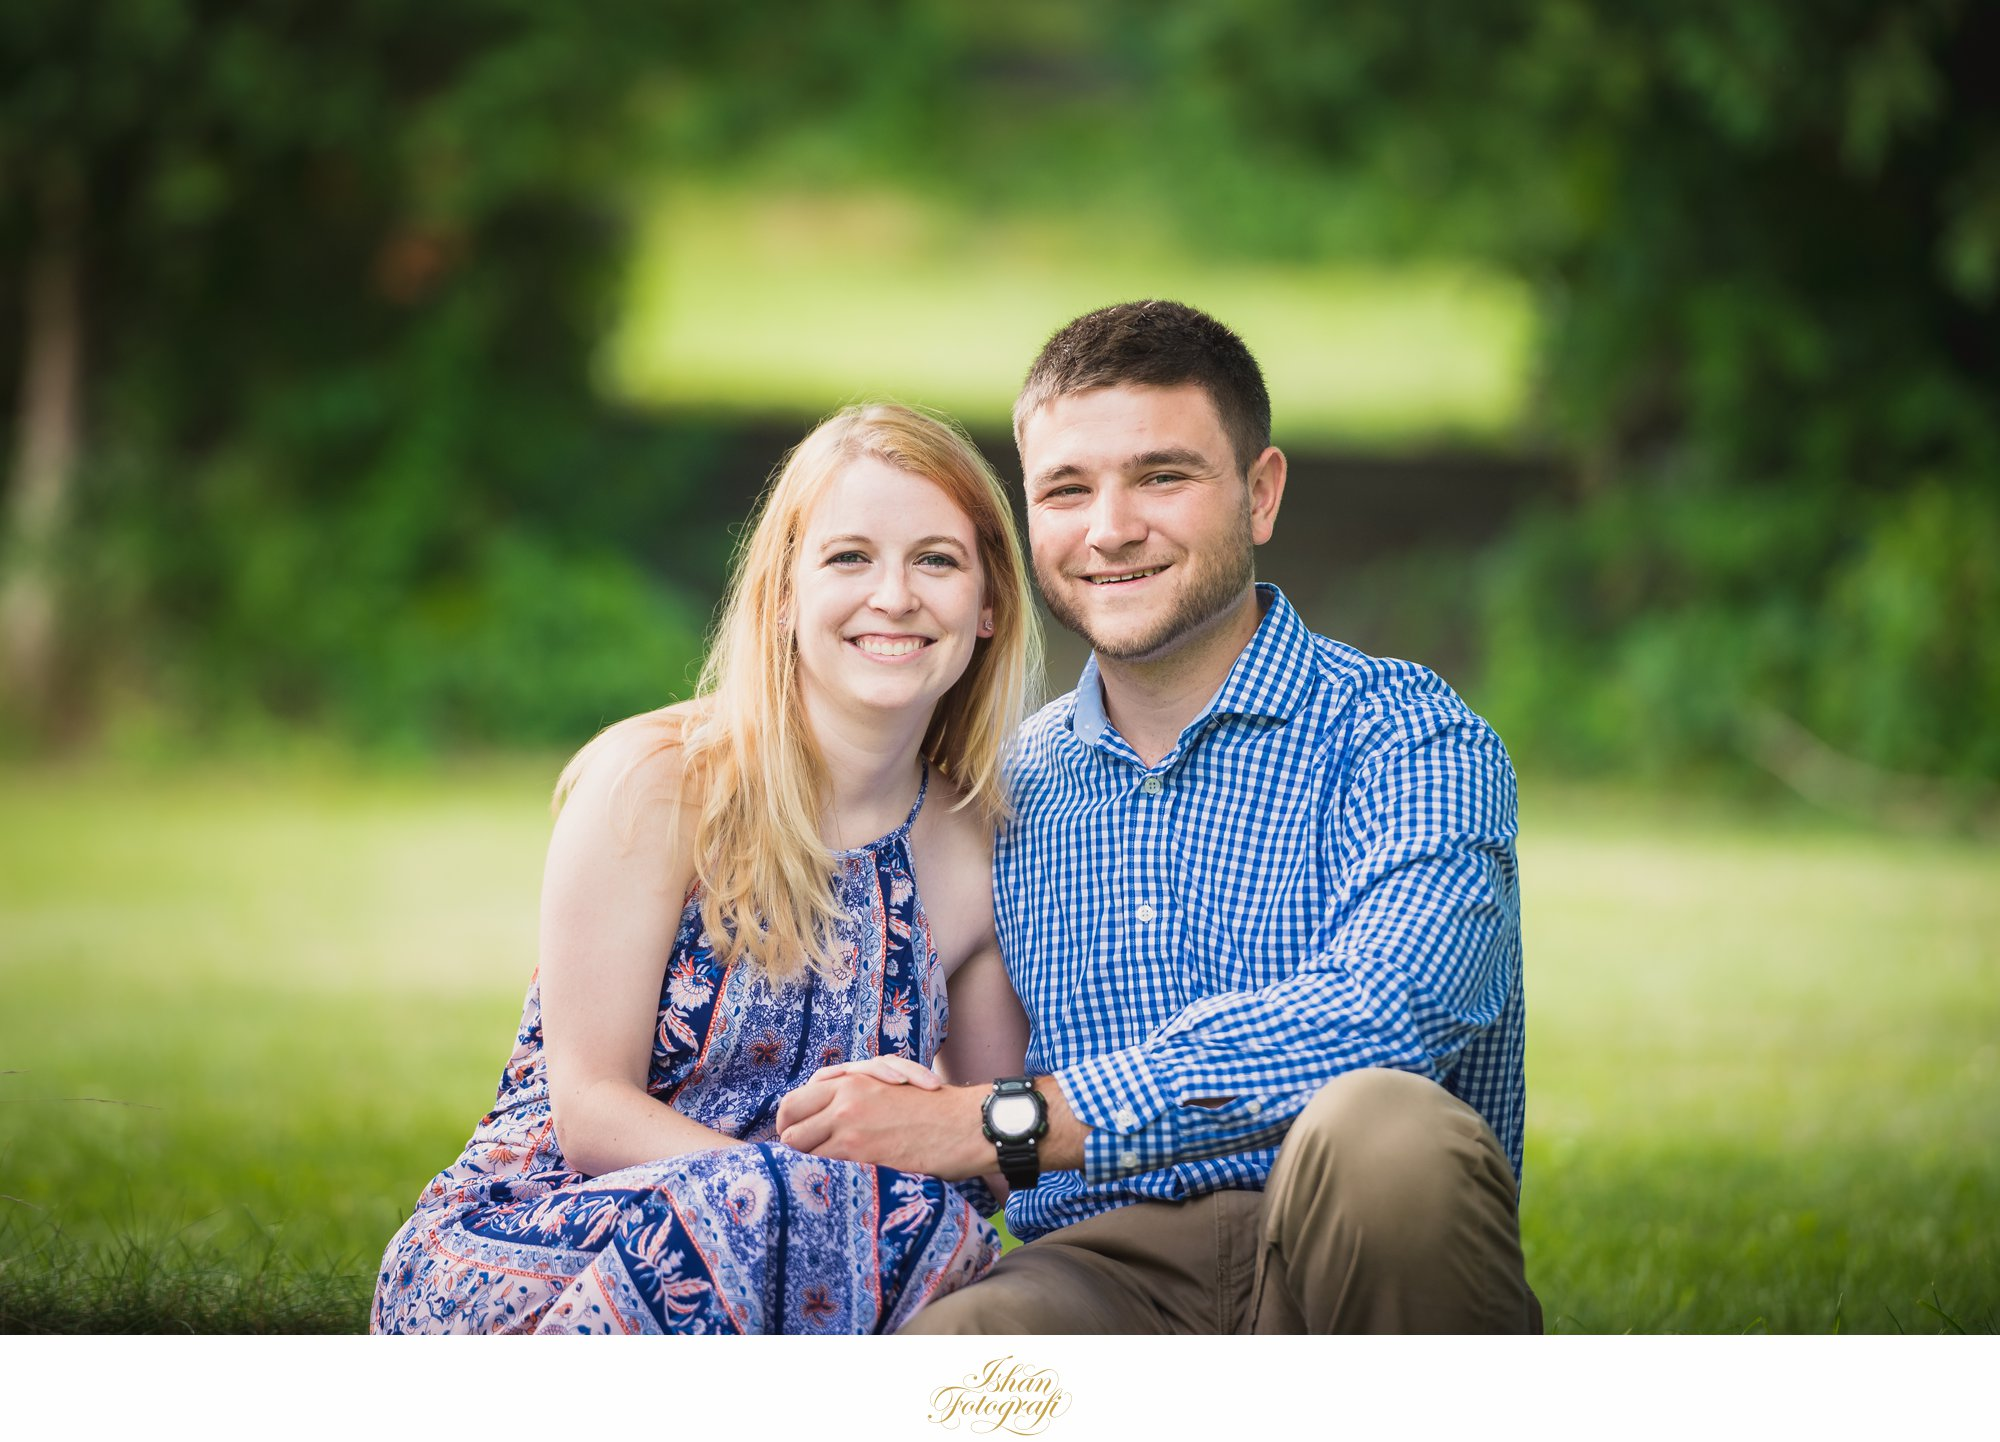 skyland-manor-engagement-photographer